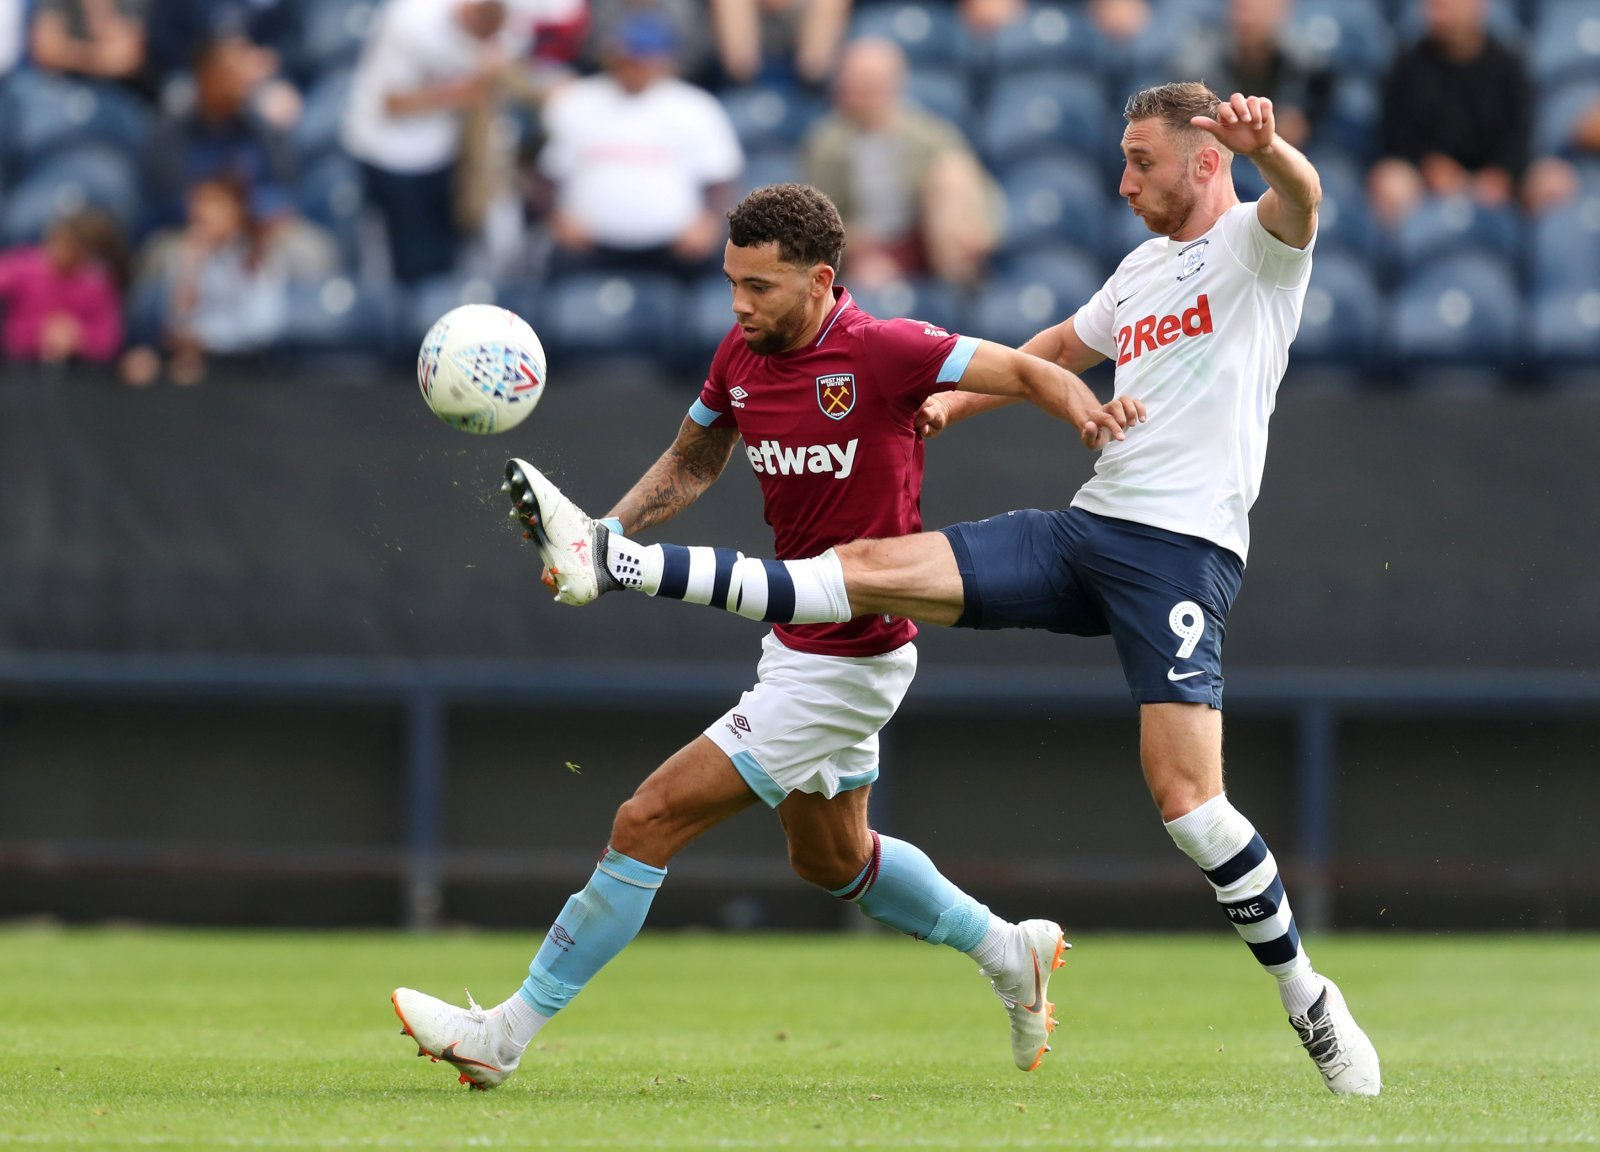 Bringing in Fredericks to make a back five is what West Ham need